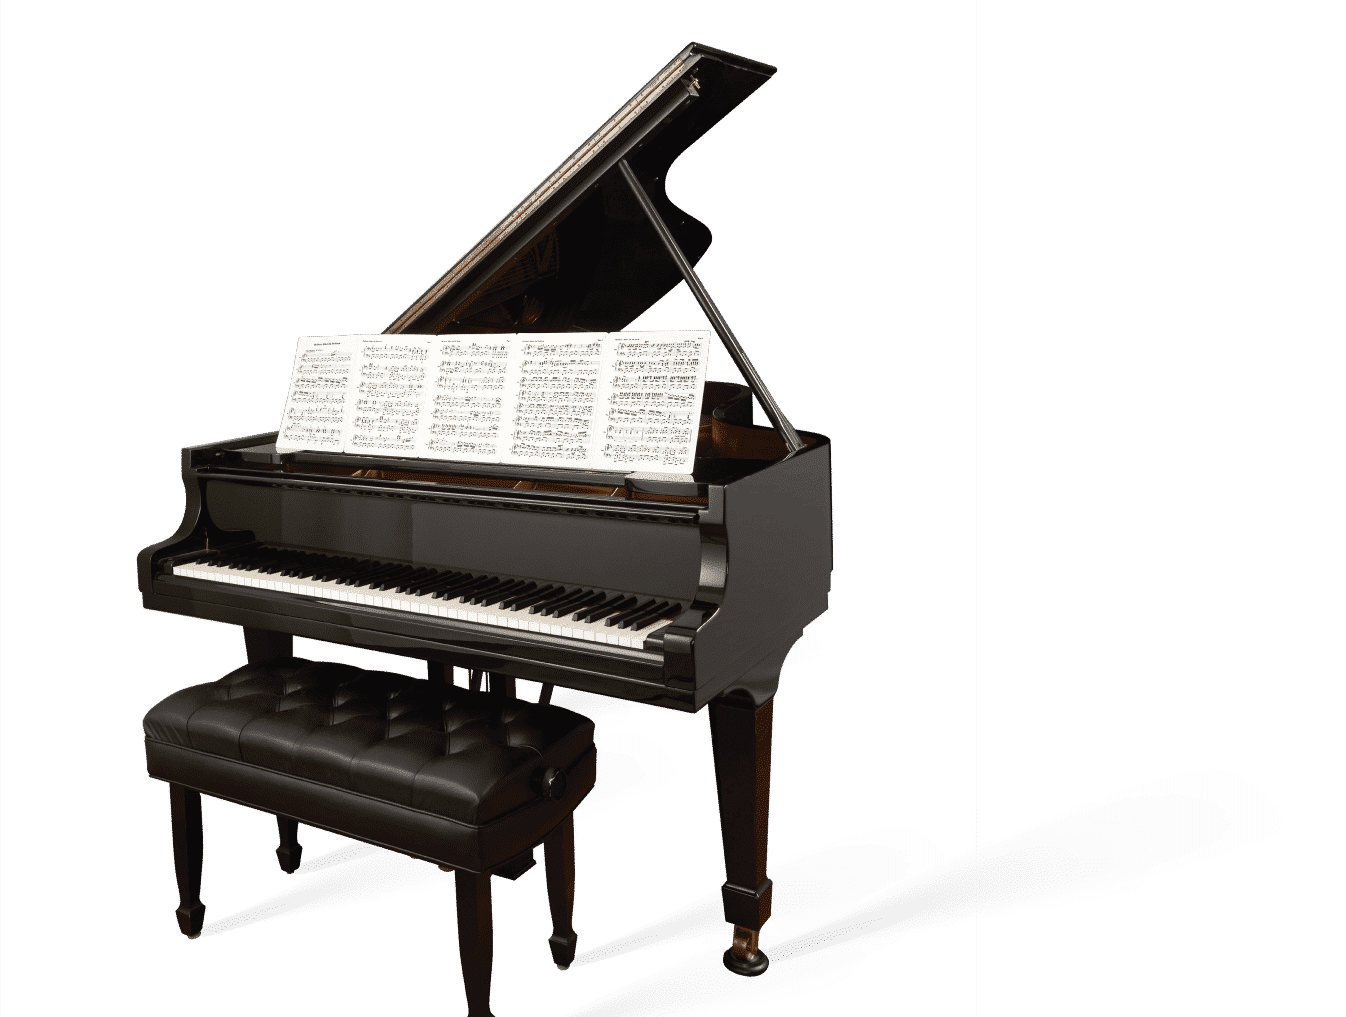 piano with sheetminder on it.